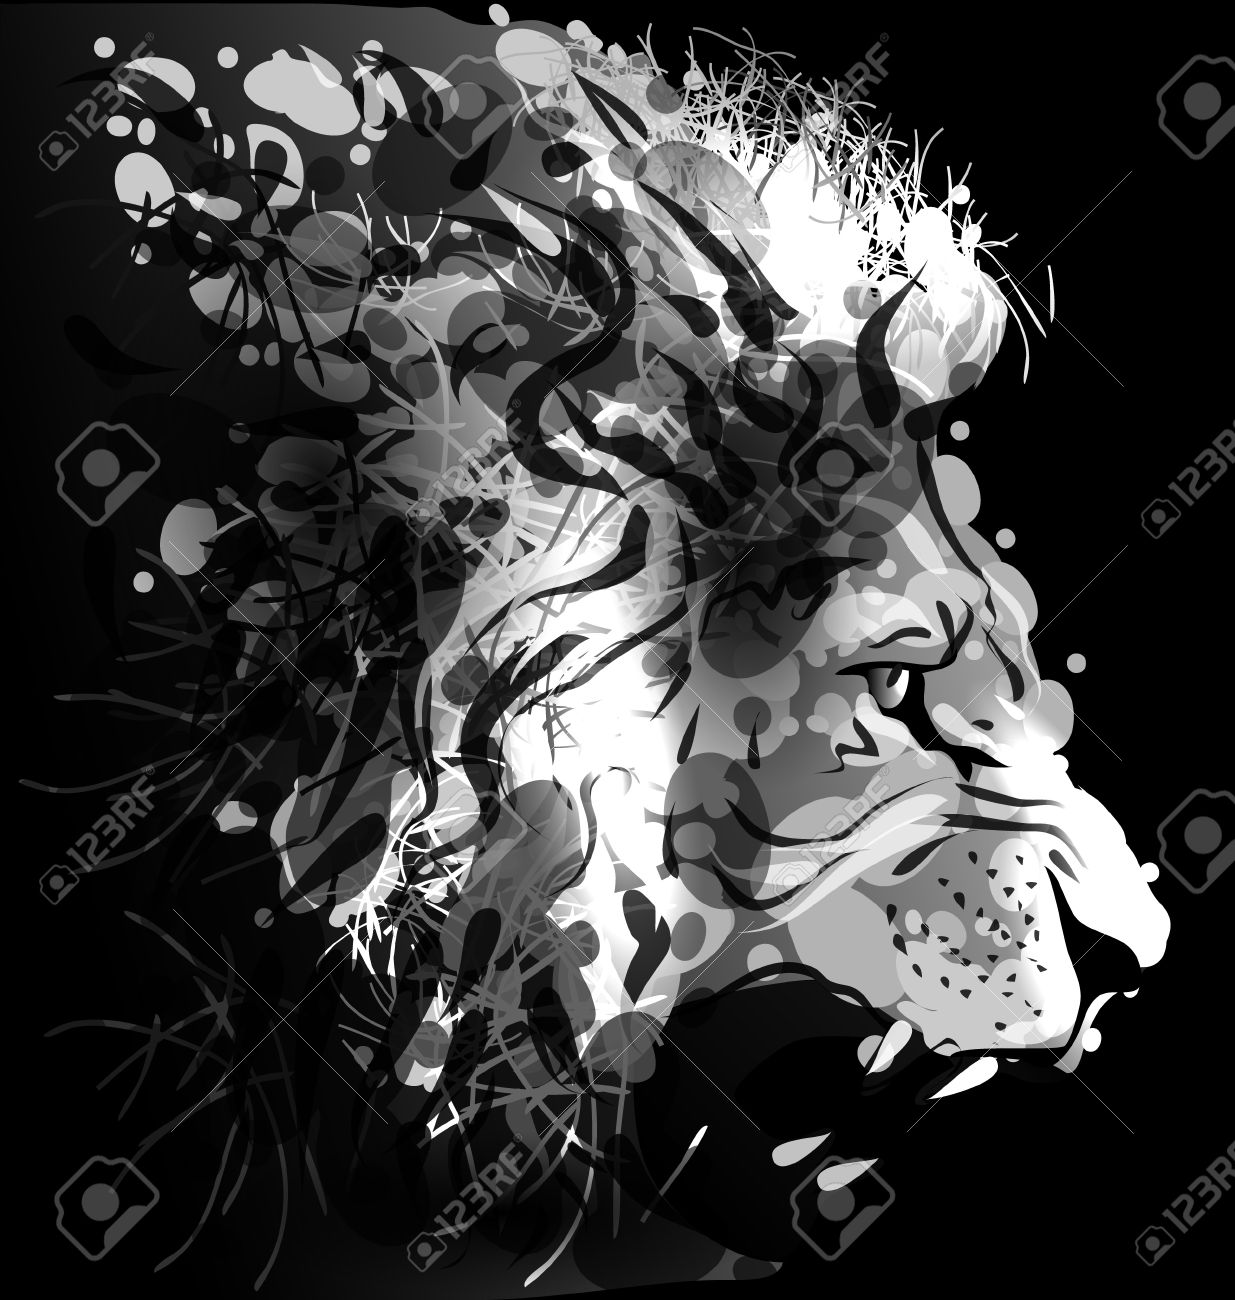 Greyscale Digital Painting Of A Lions Head Royalty Free Cliparts Vectors And Stock Illustration Image 58066895